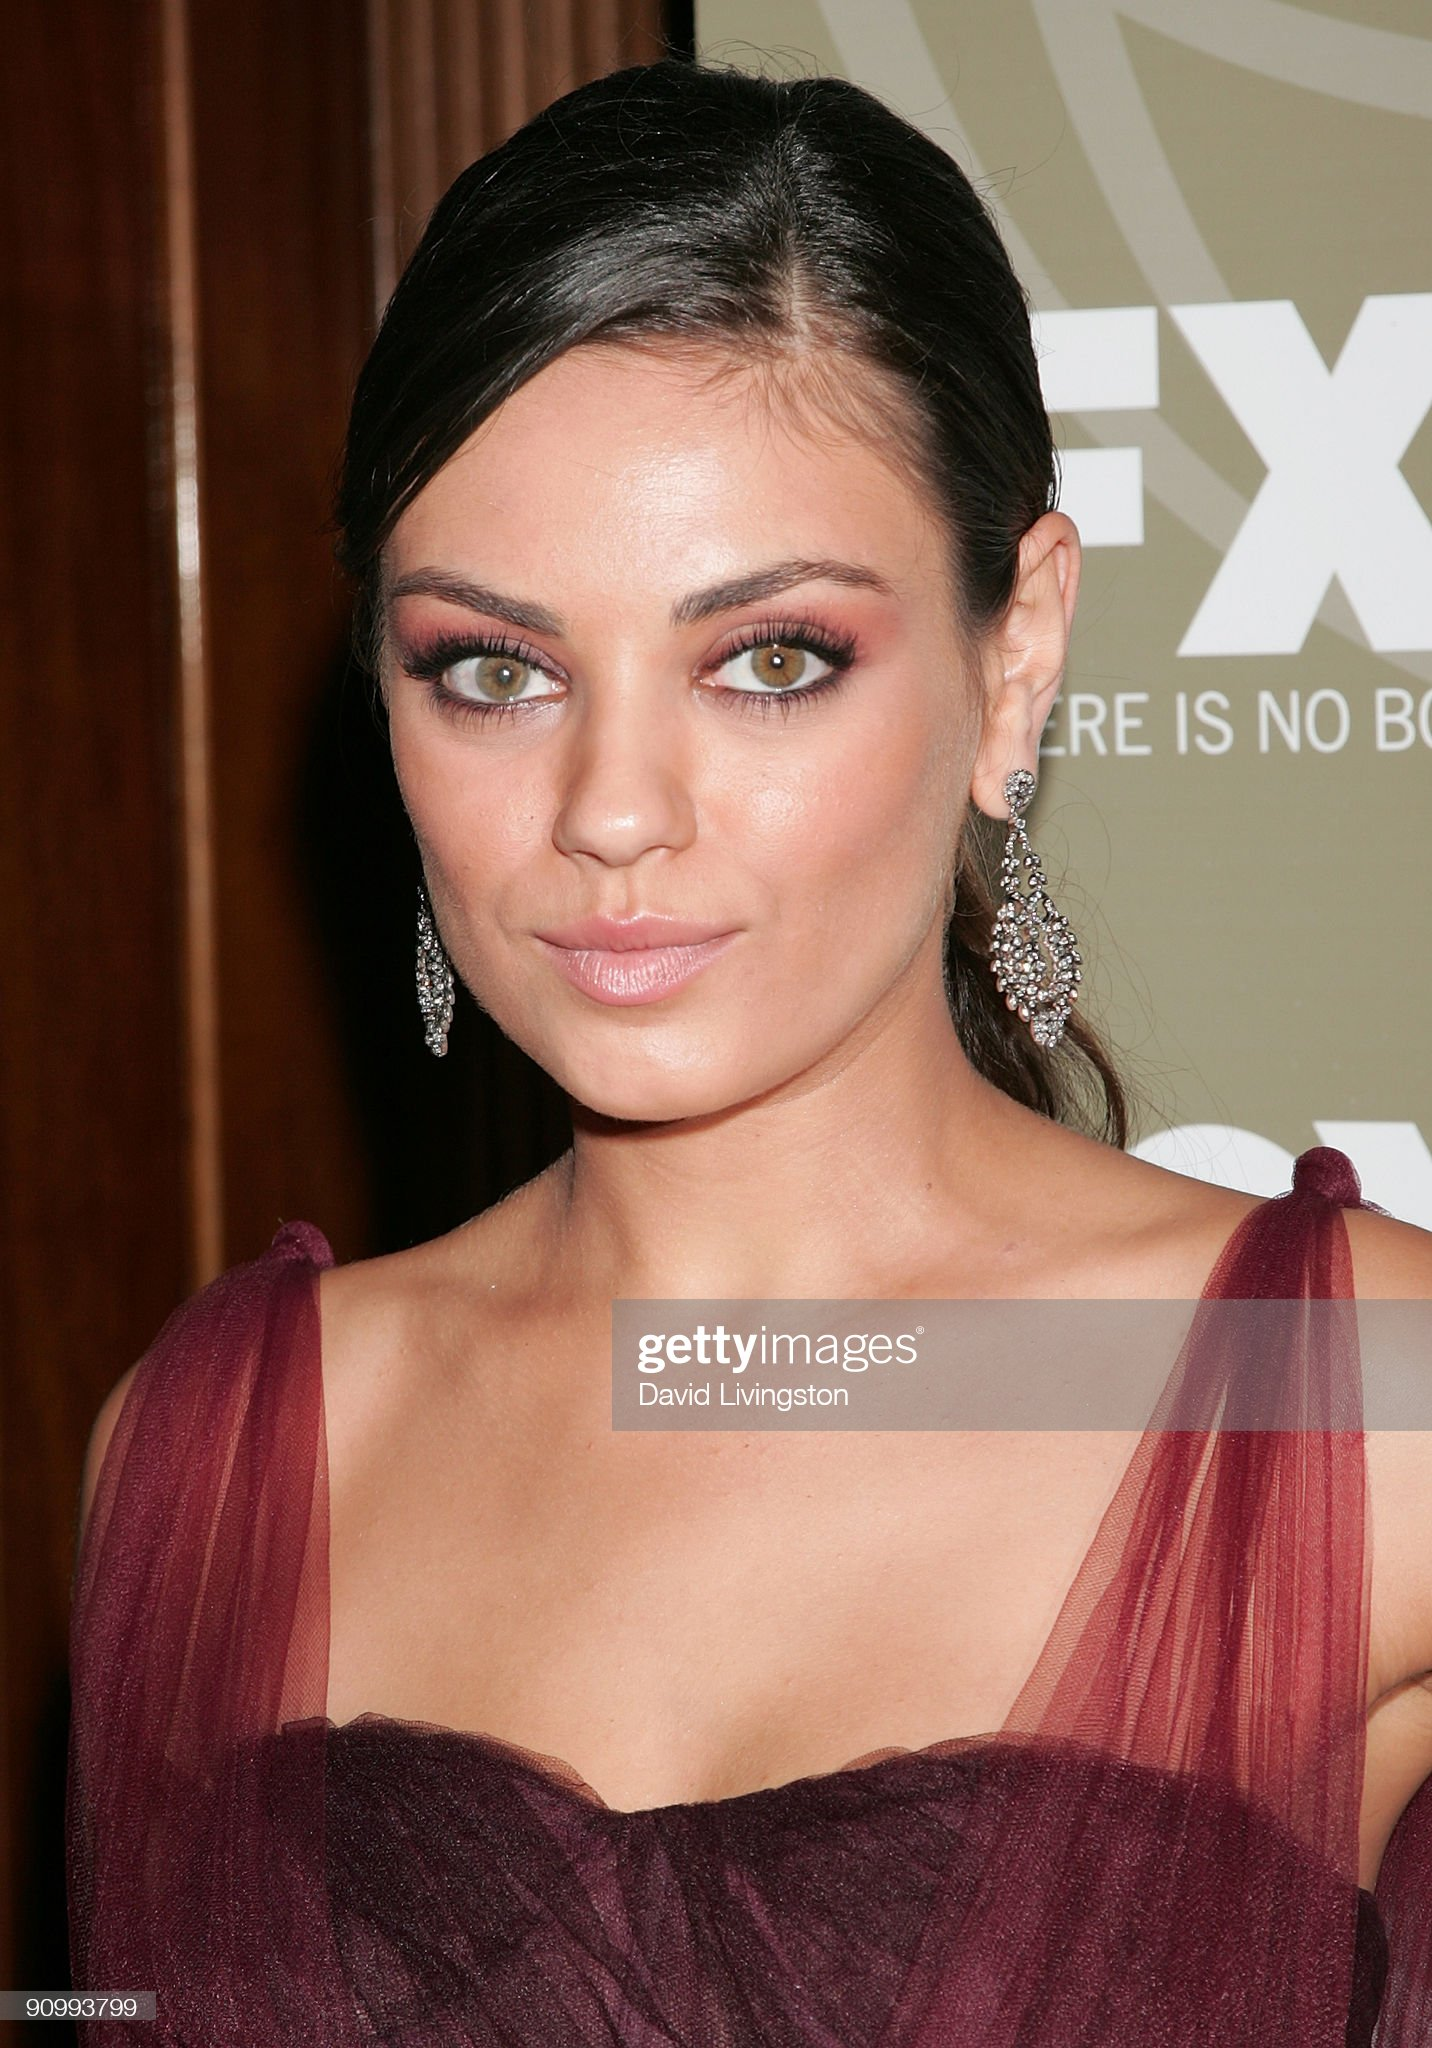 Hazel eyes - Personas famosas con los ojos de color AVELLANA Actress-mila-kunis-attends-the-fox-emmy-party-at-cicada-on-september-picture-id90993799?s=2048x2048